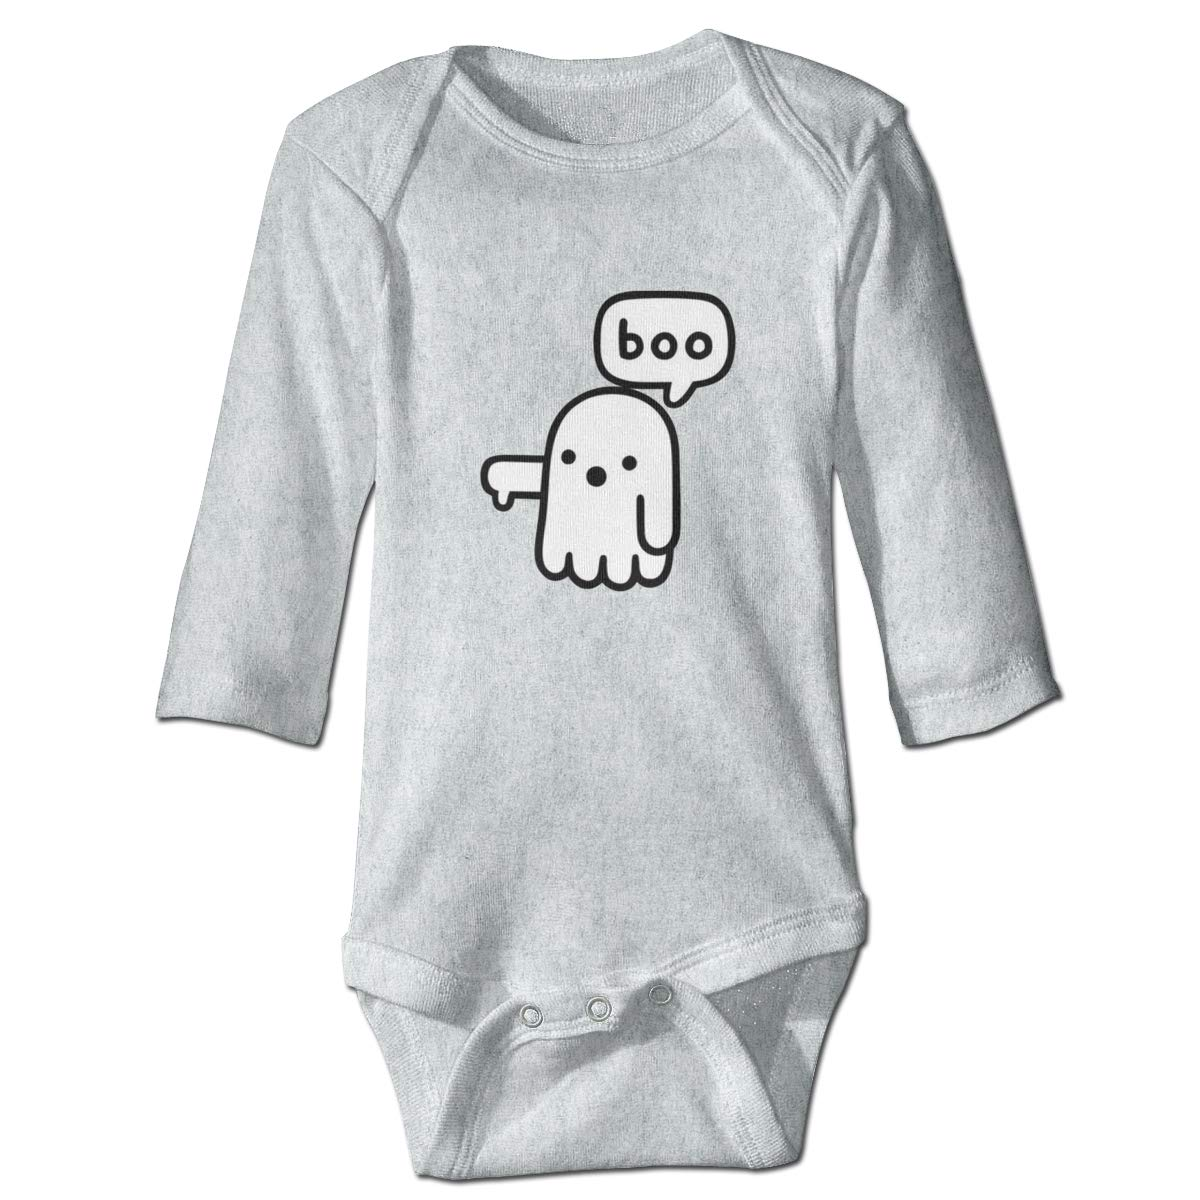 Dfenere Boo Hip Hop Newborn Baby Long Sleeve Bodysuit Romper Infant Summer Clothing